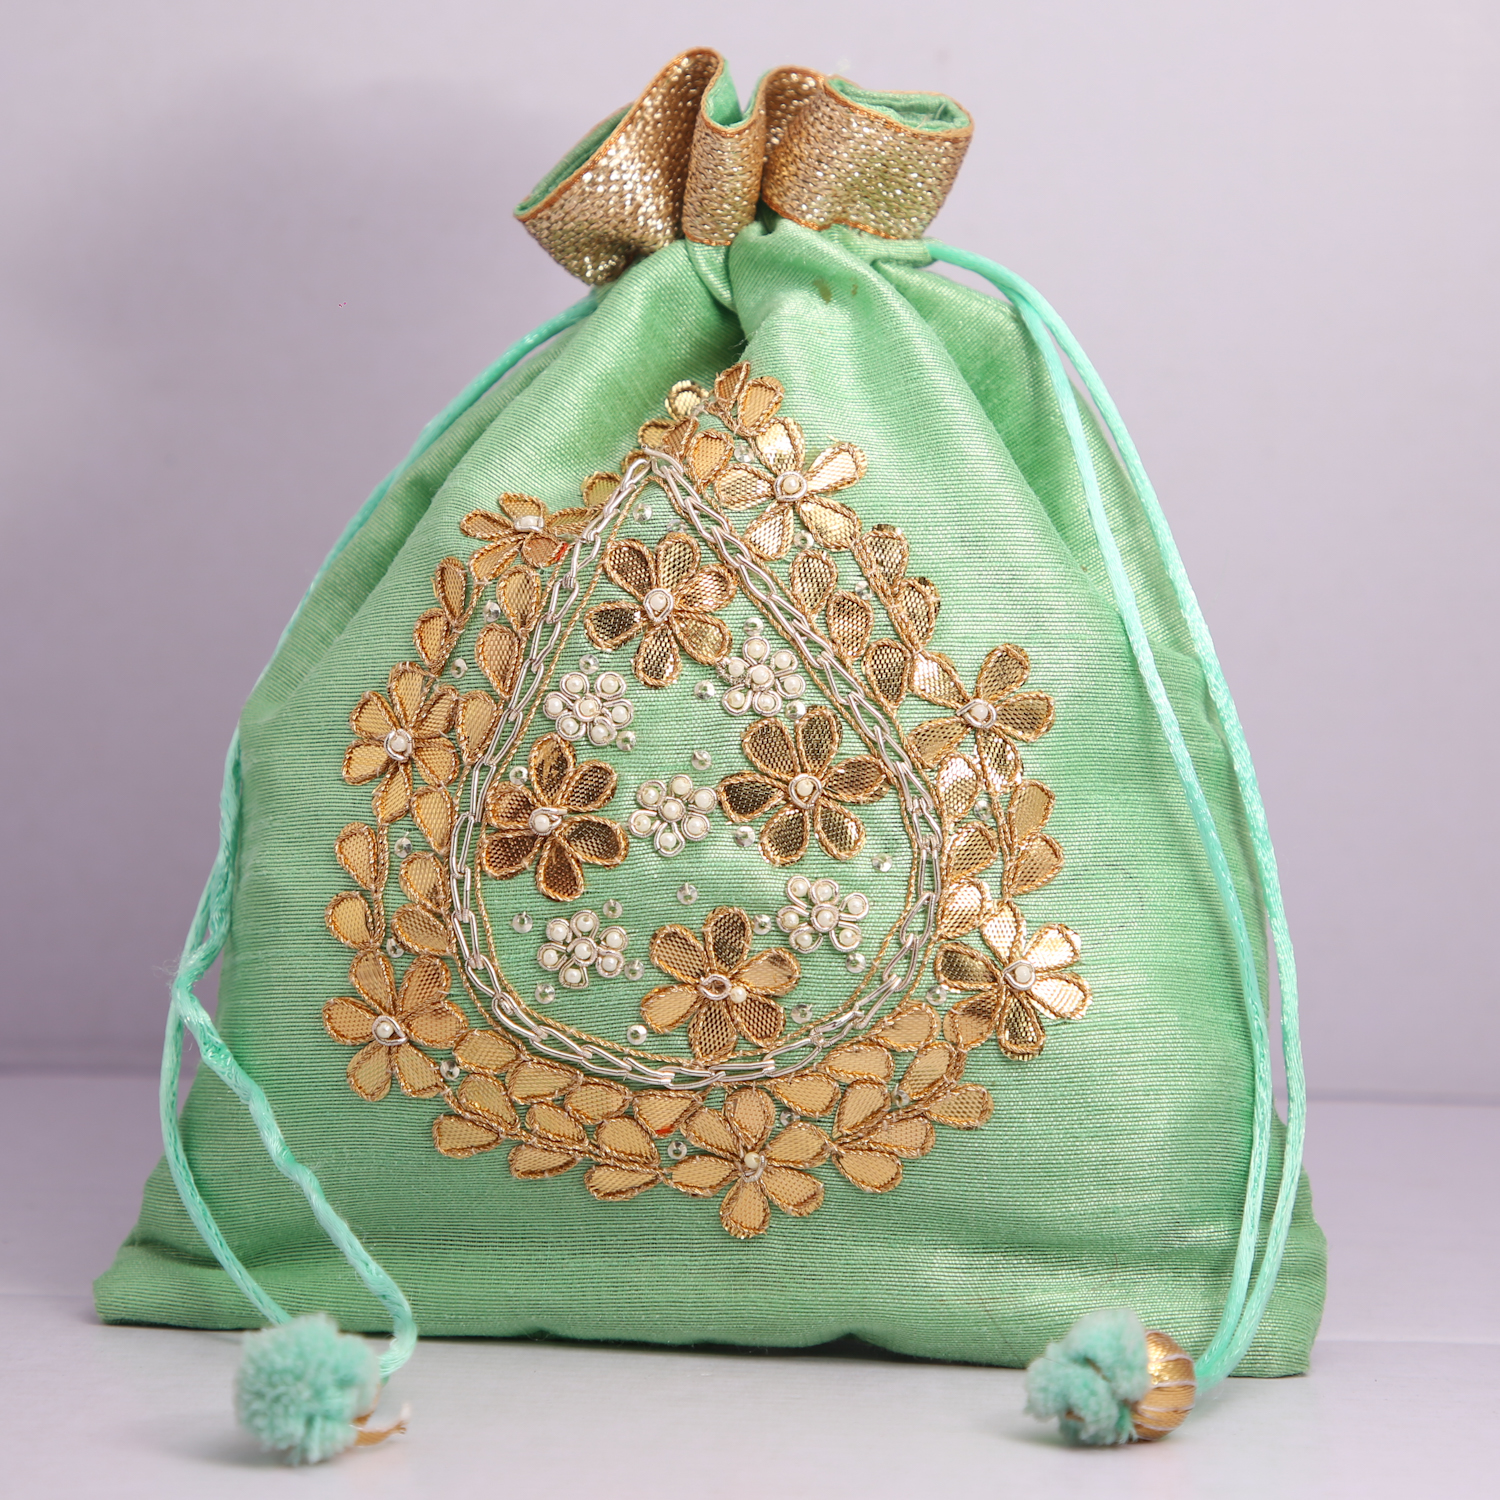 Pack Of 10/50 Wedding Favor Gift Hand Crafted Potli Bag With Beaded Chain For Women|| Evening Bags|| Embroidery Handbag||Gift||Return Gift||